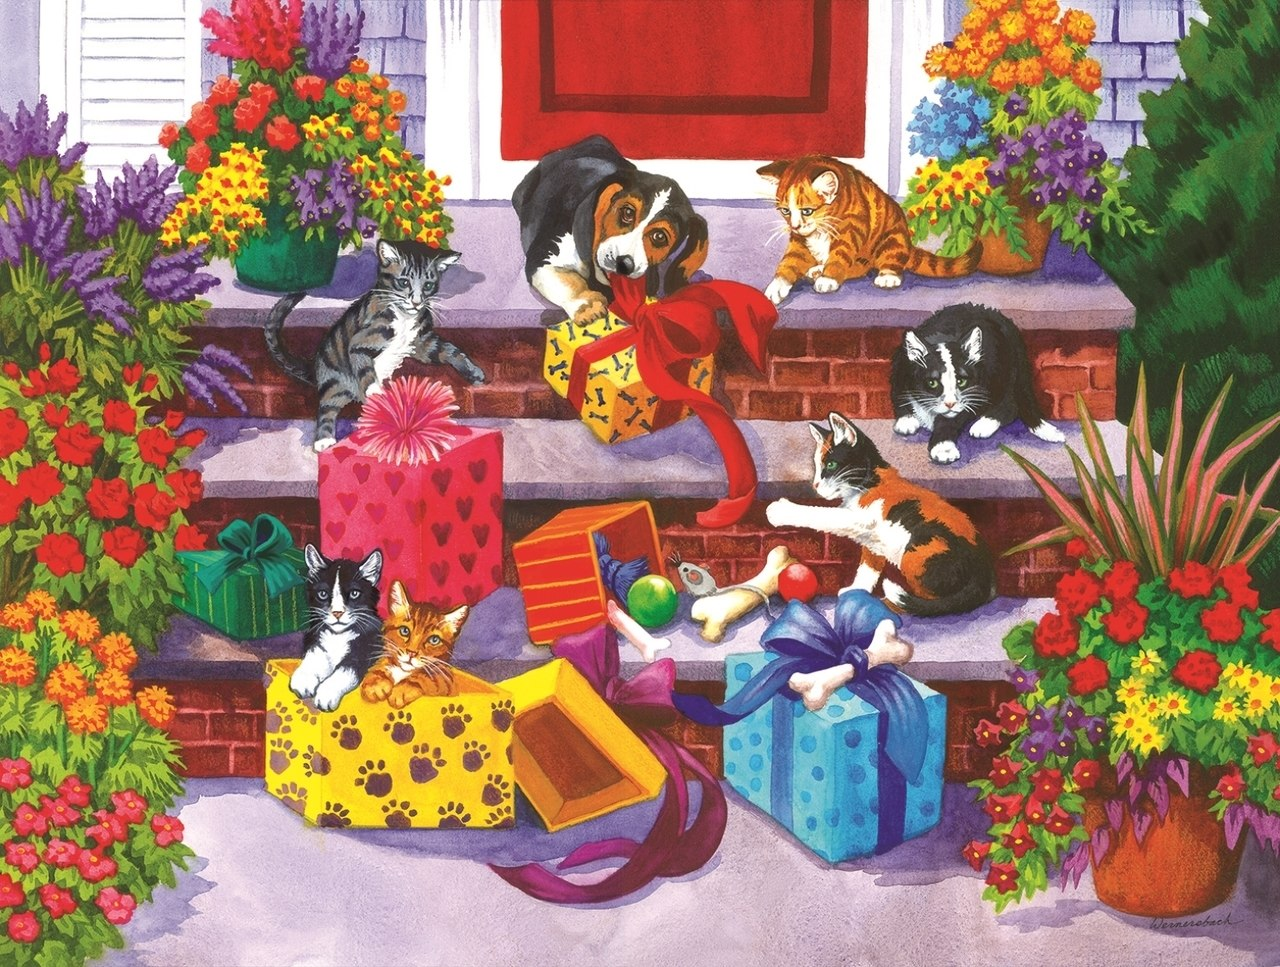 Time for Toys and Treats - 300pc Jigsaw Puzzle By Sunsout  			  					NEW